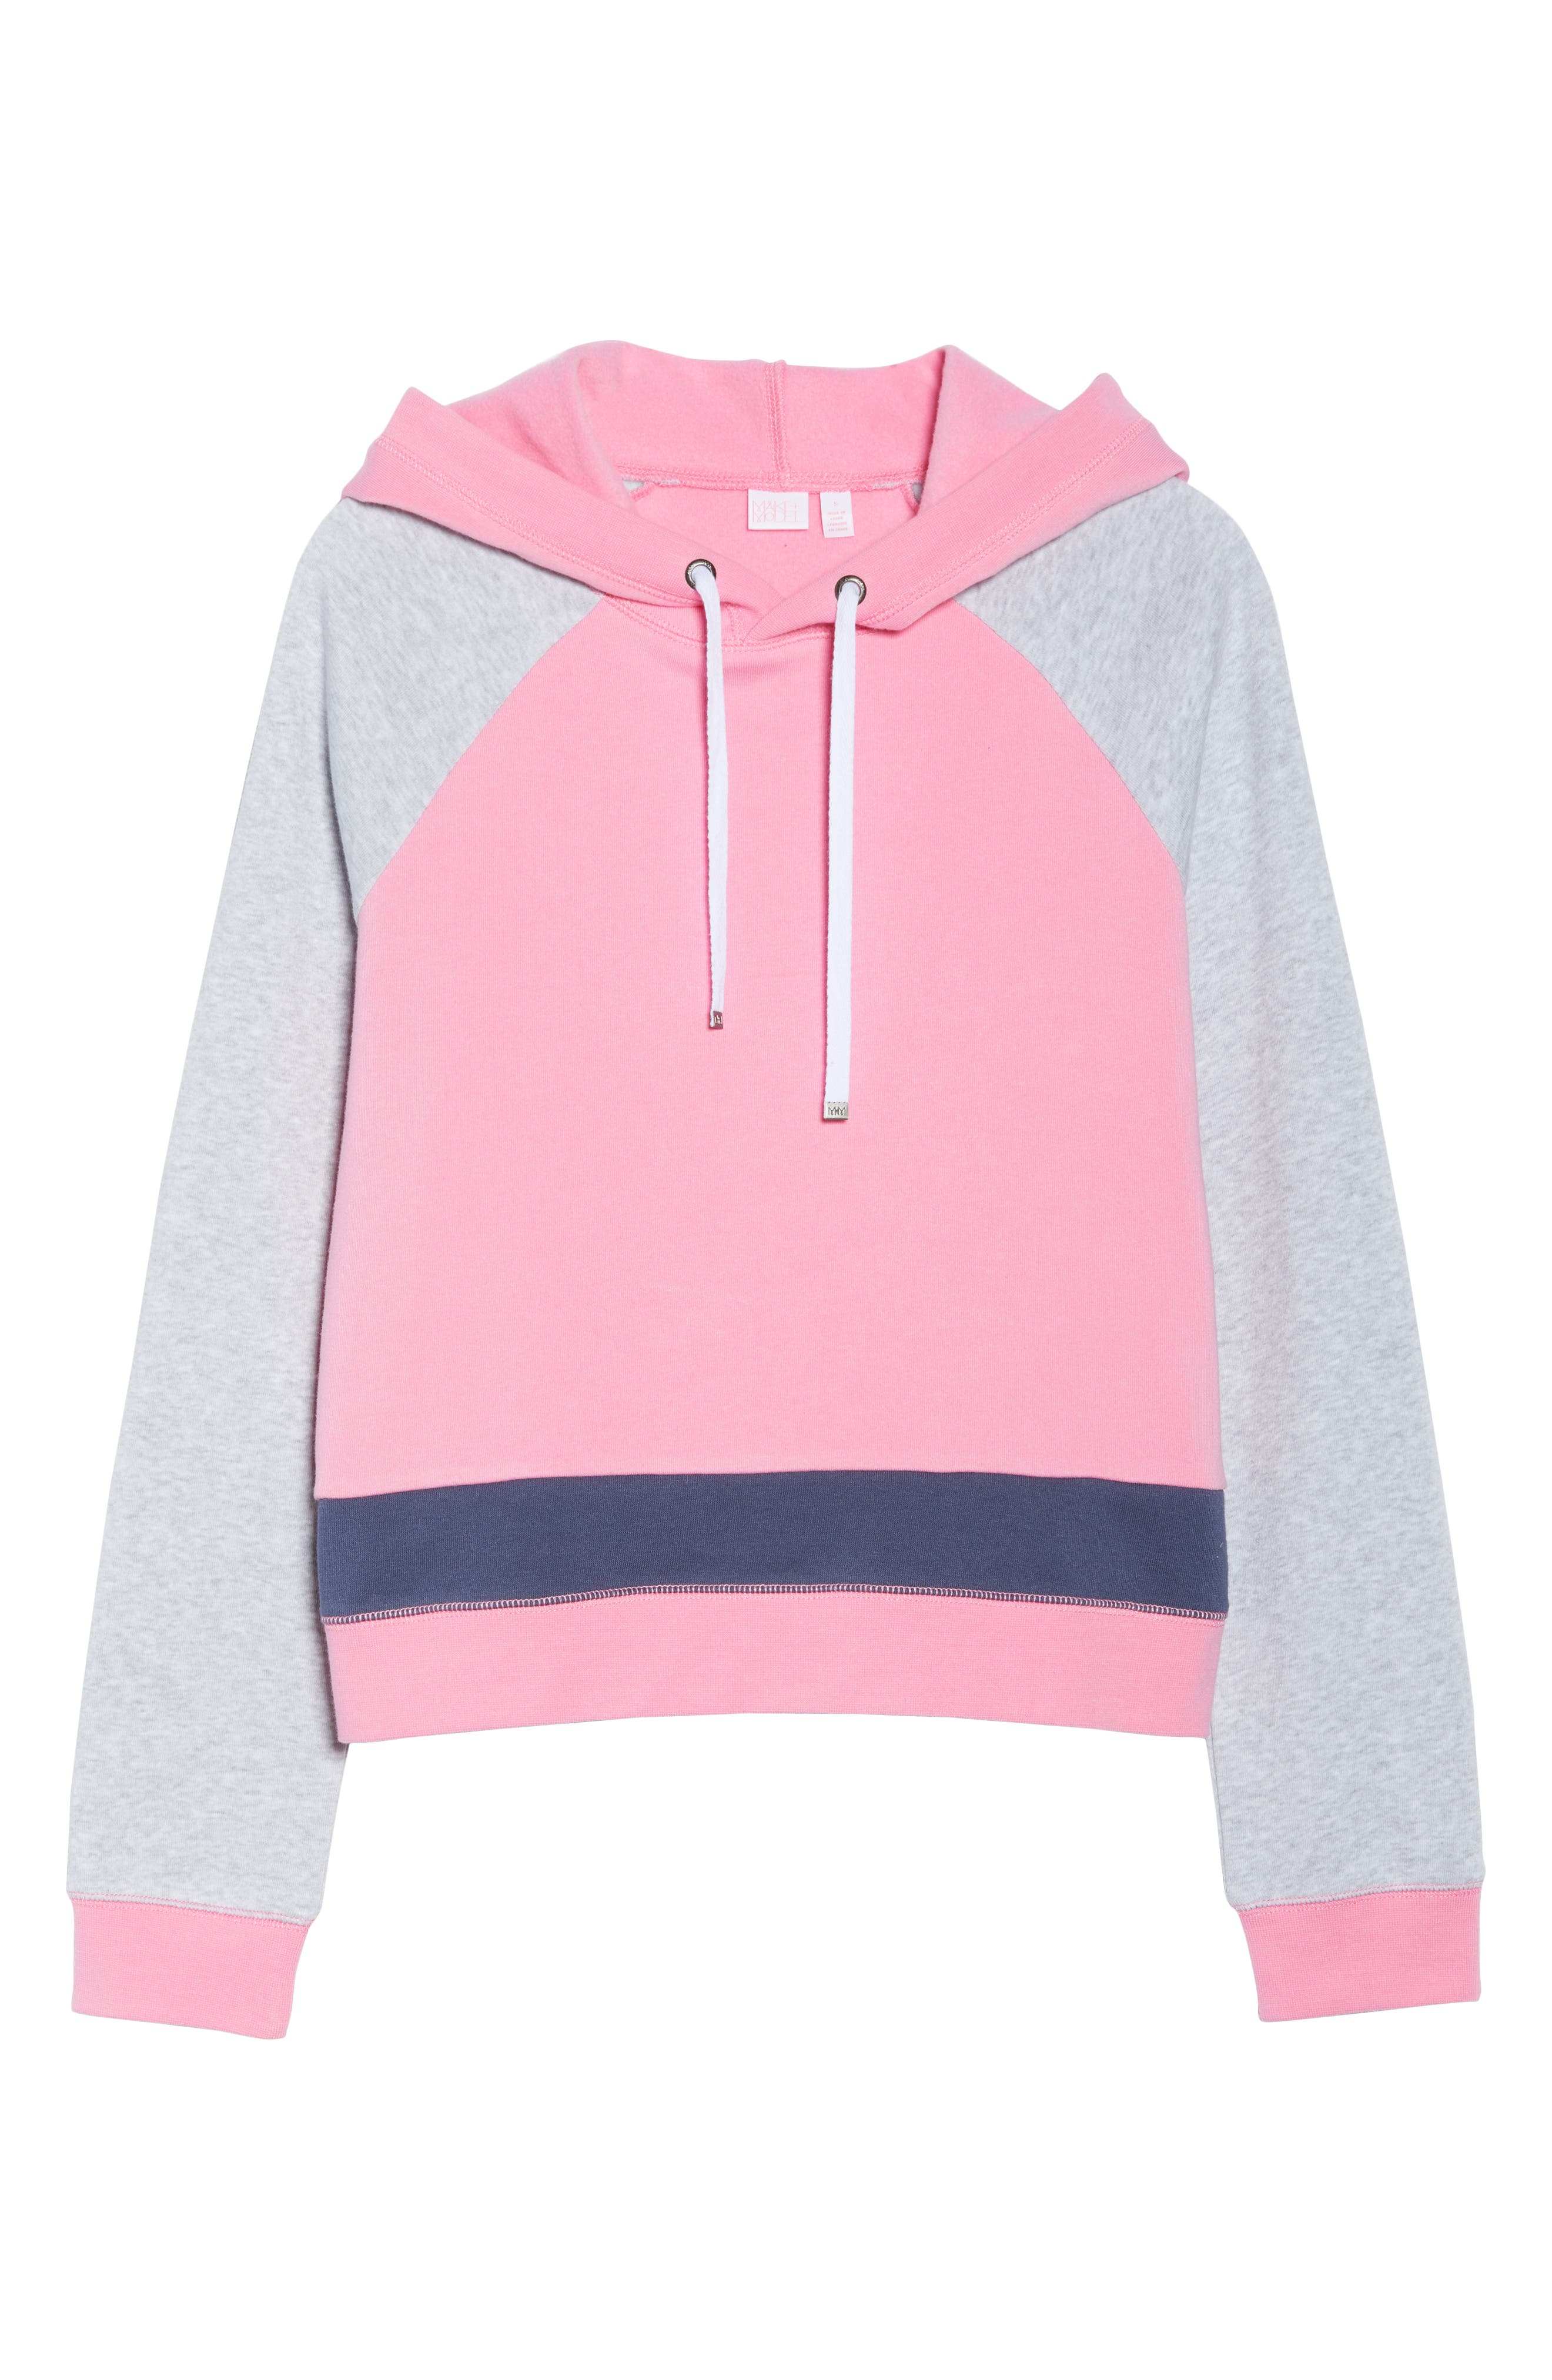 Sleepy Fleece Hoodie,                             Alternate thumbnail 6, color,                             660